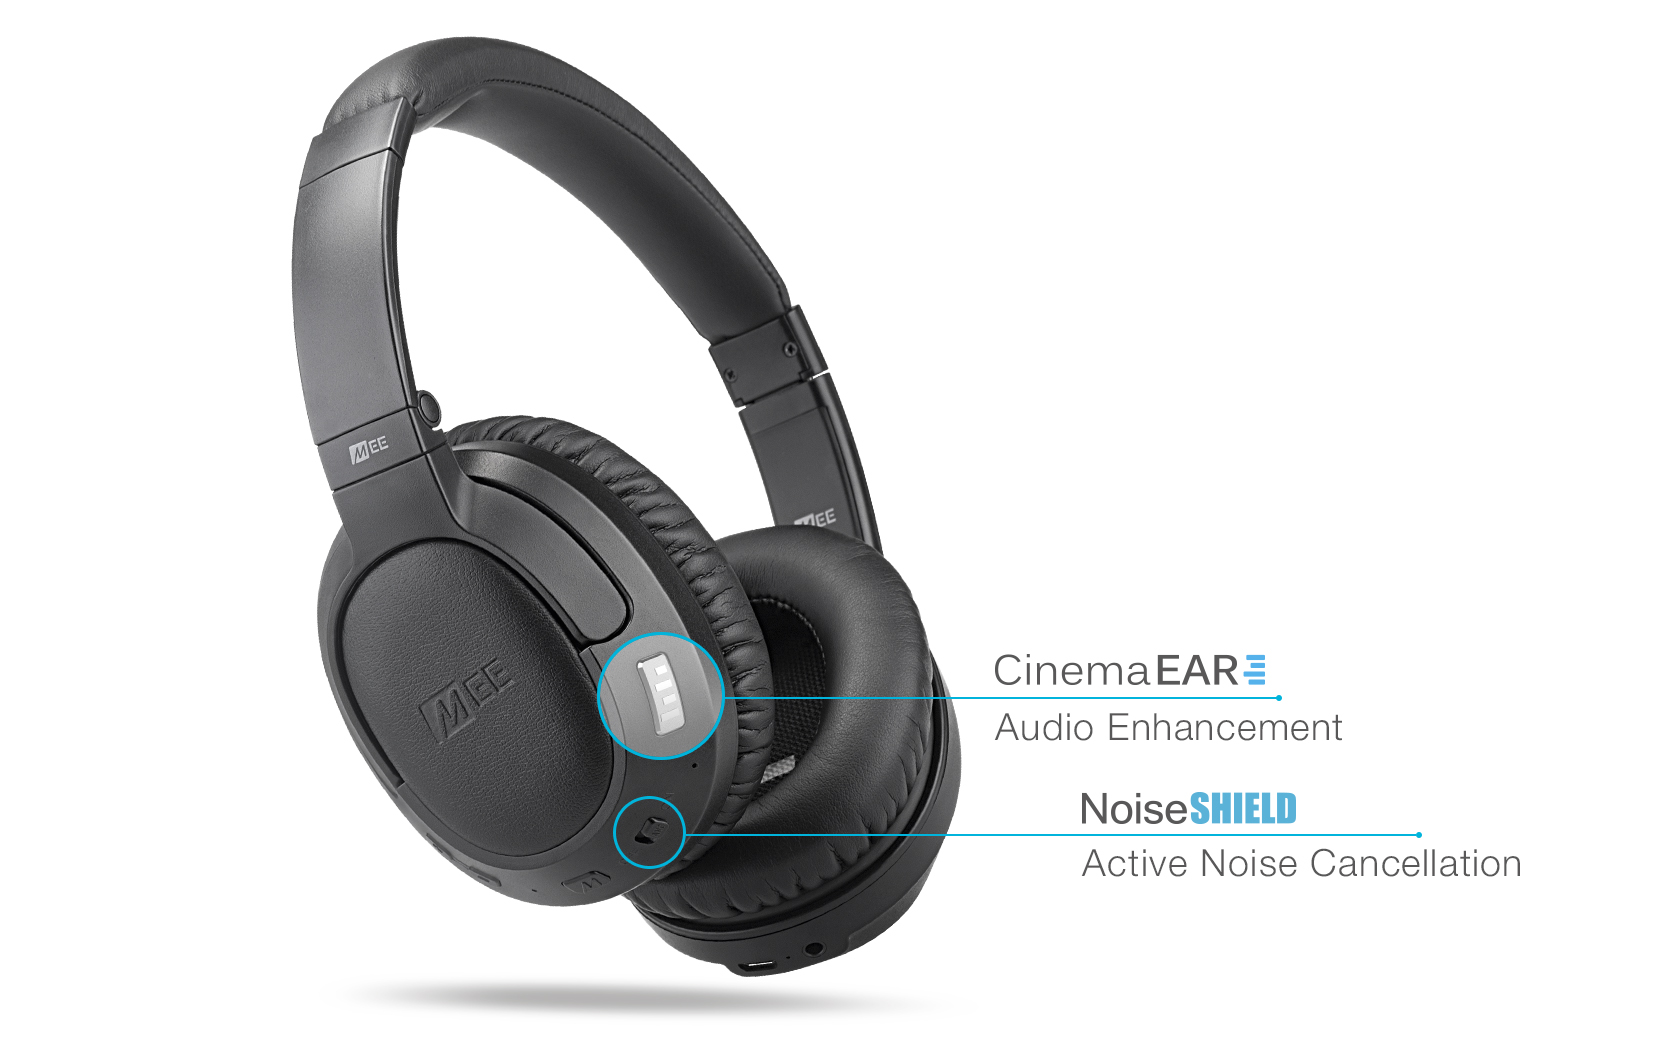 Matrix Cinema ANC Bluetooth Wireless Active Noise Cancelling Headphones  with CinemaEAR audio enhancement (AF68-ANC)